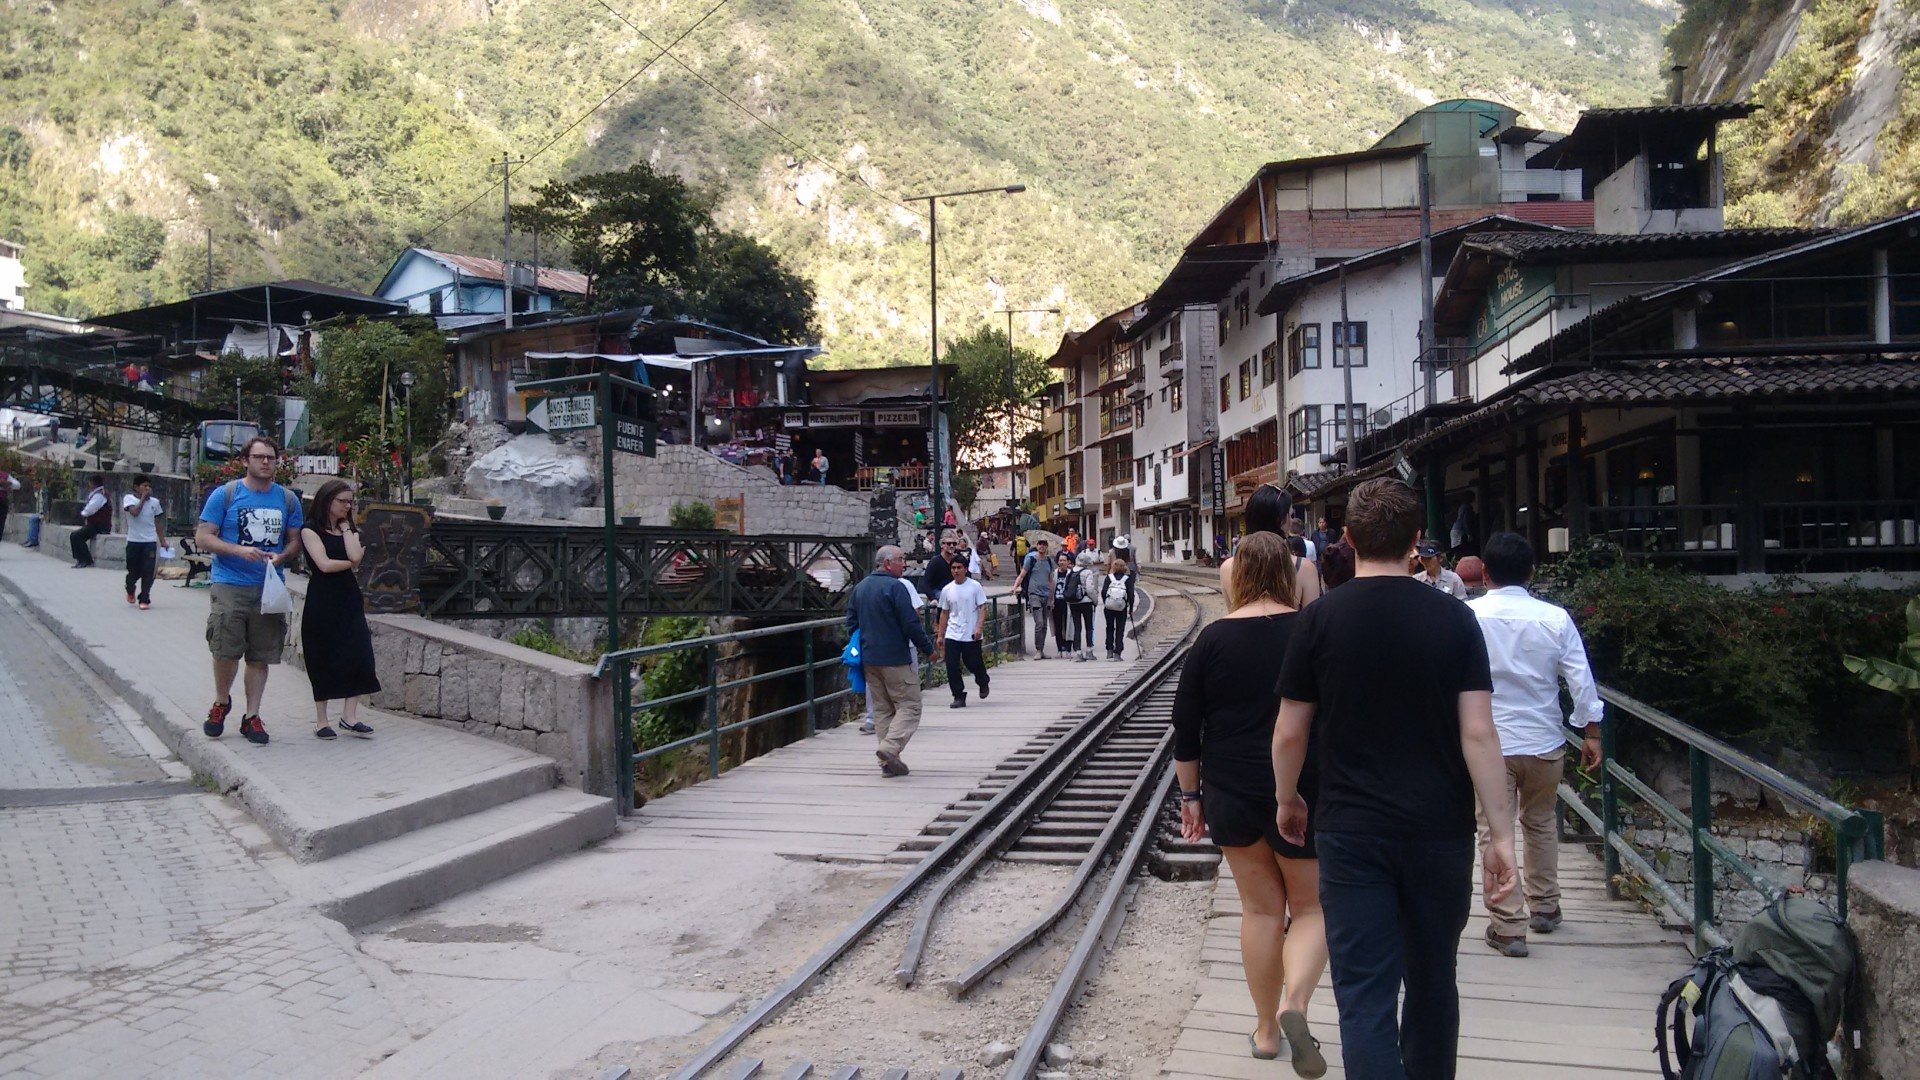 Aguas Calientes isn't so bad. Ninety percent of the population may be tourists, but still...